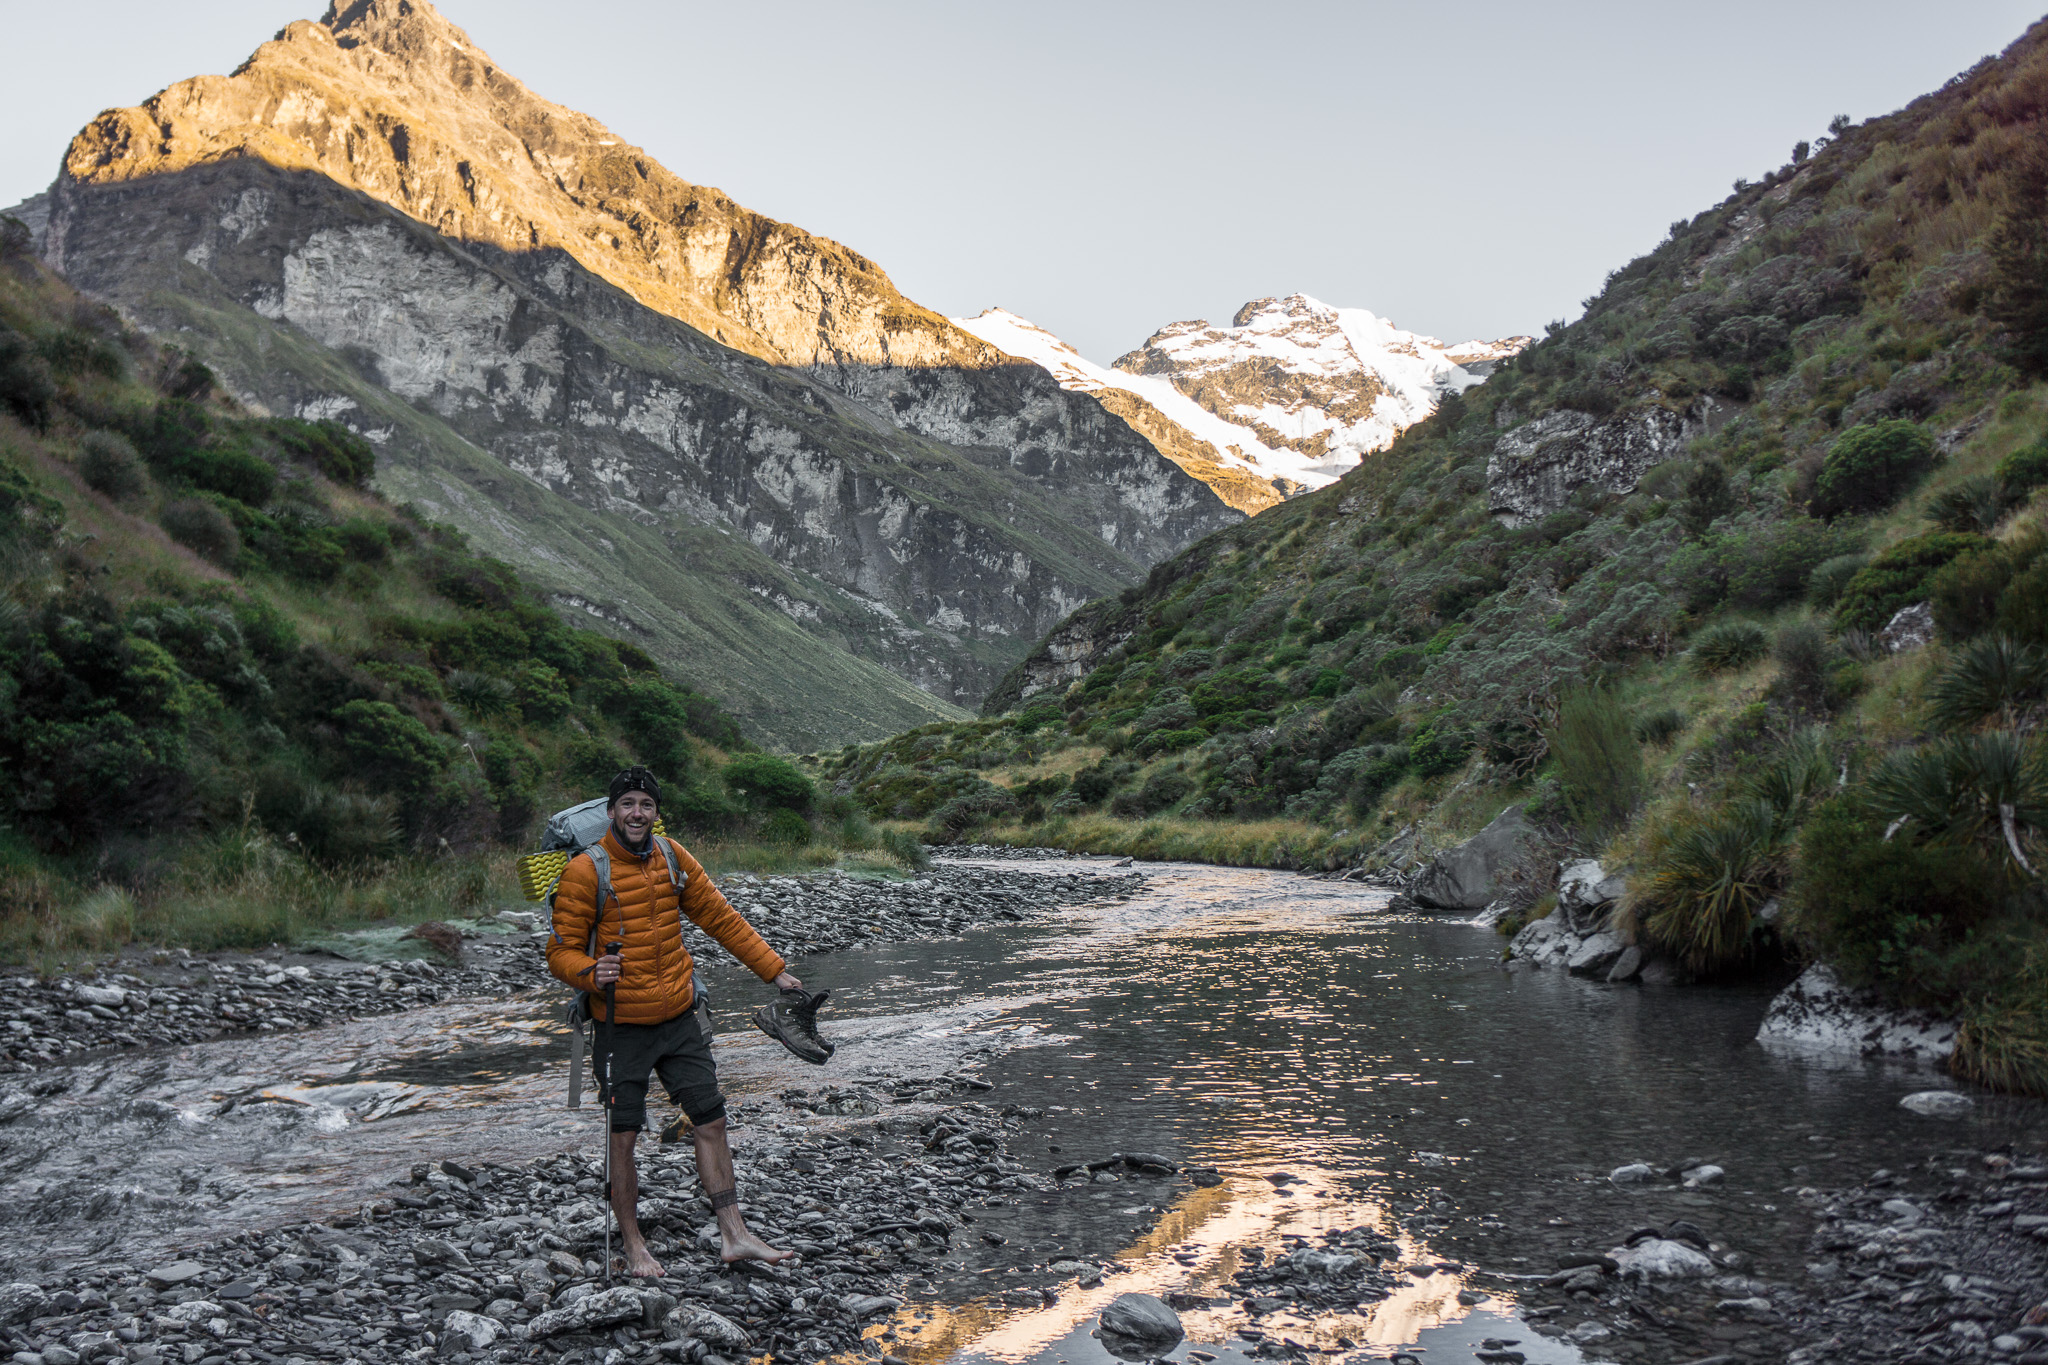 Tanguy fording the river to the rock bivvy